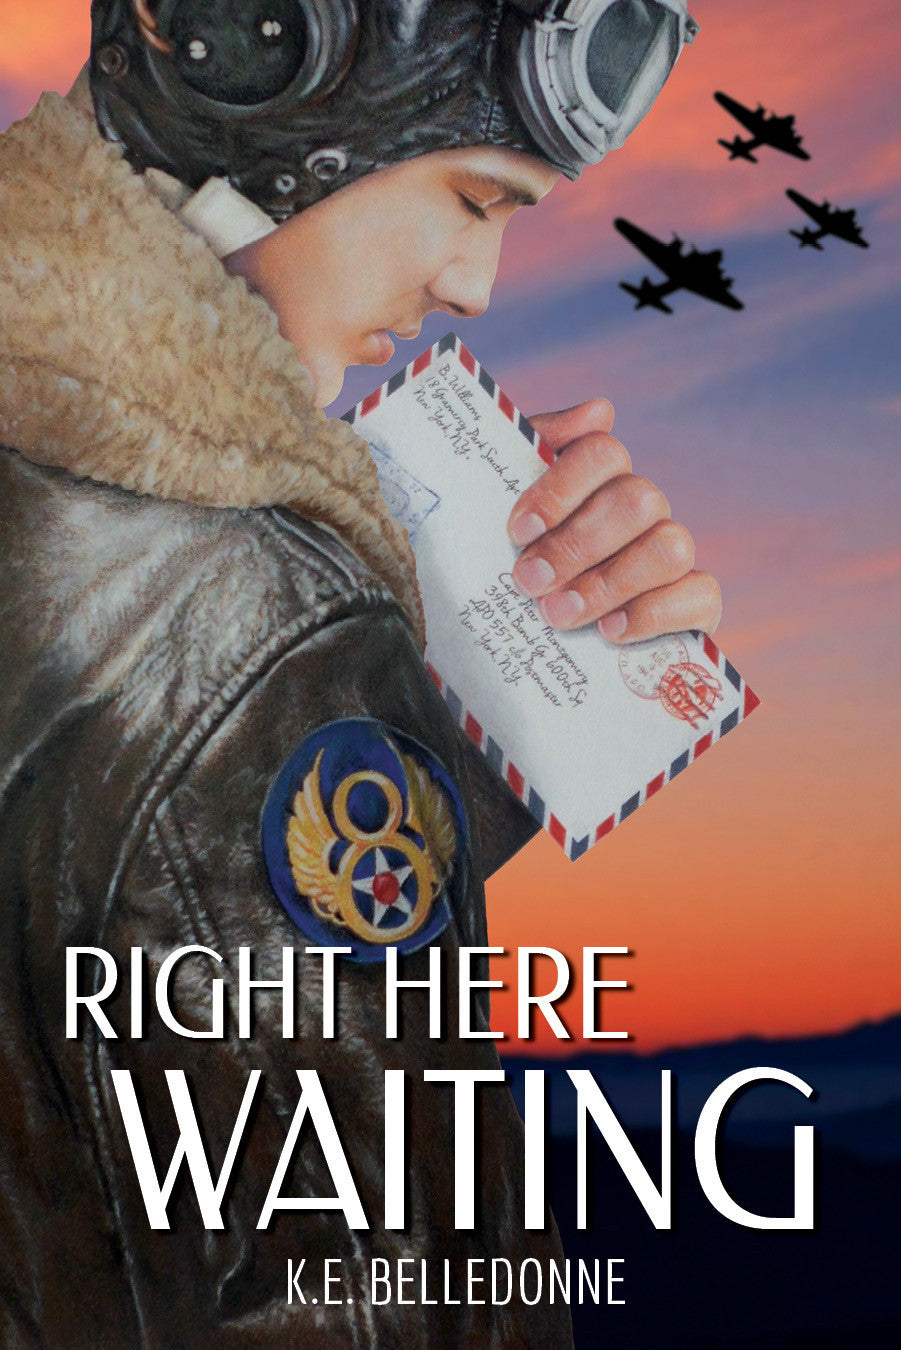 Right Here Waiting by K.E. Belledonne (print edition)